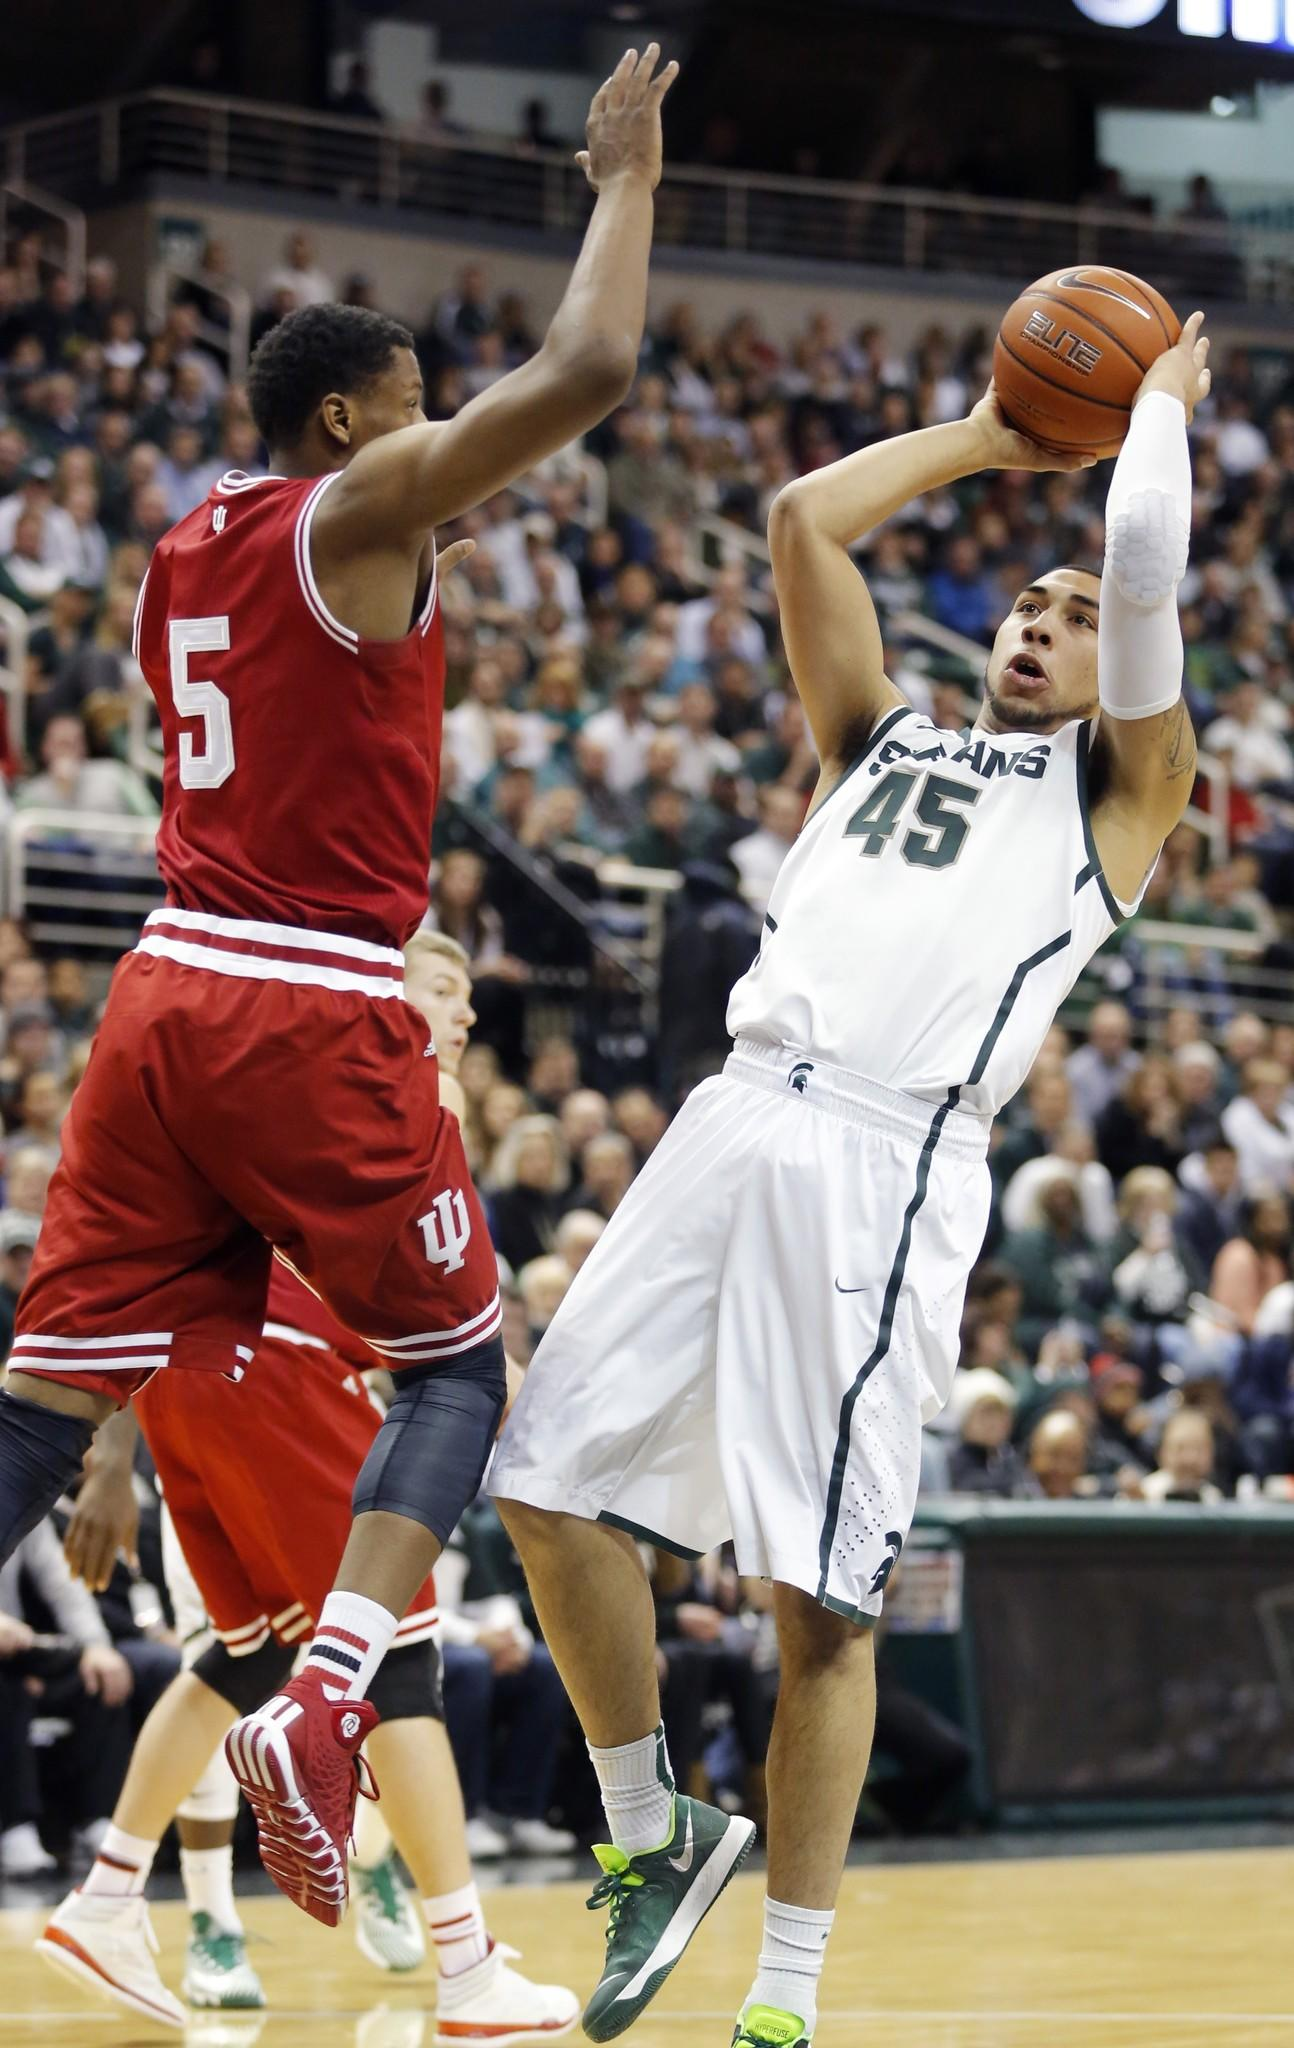 Michigan State's Denzel Valentine takes a shot against Indiana's Troy Williams during the first half at Breslin Center.